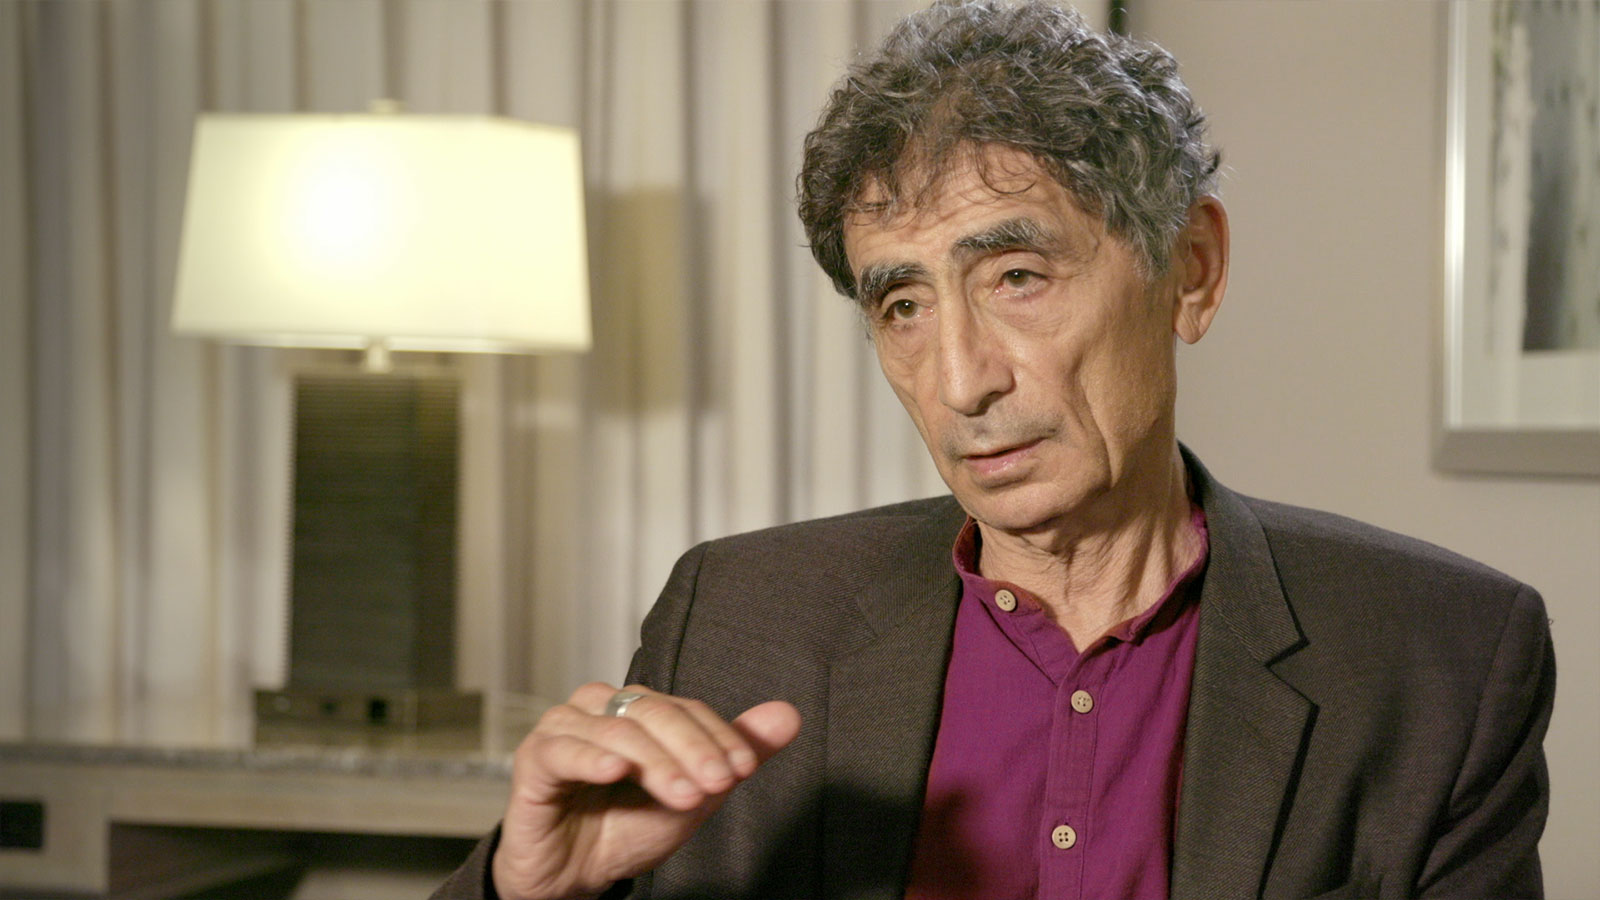 Gabor Maté - Addiction ExpertBest-selling author